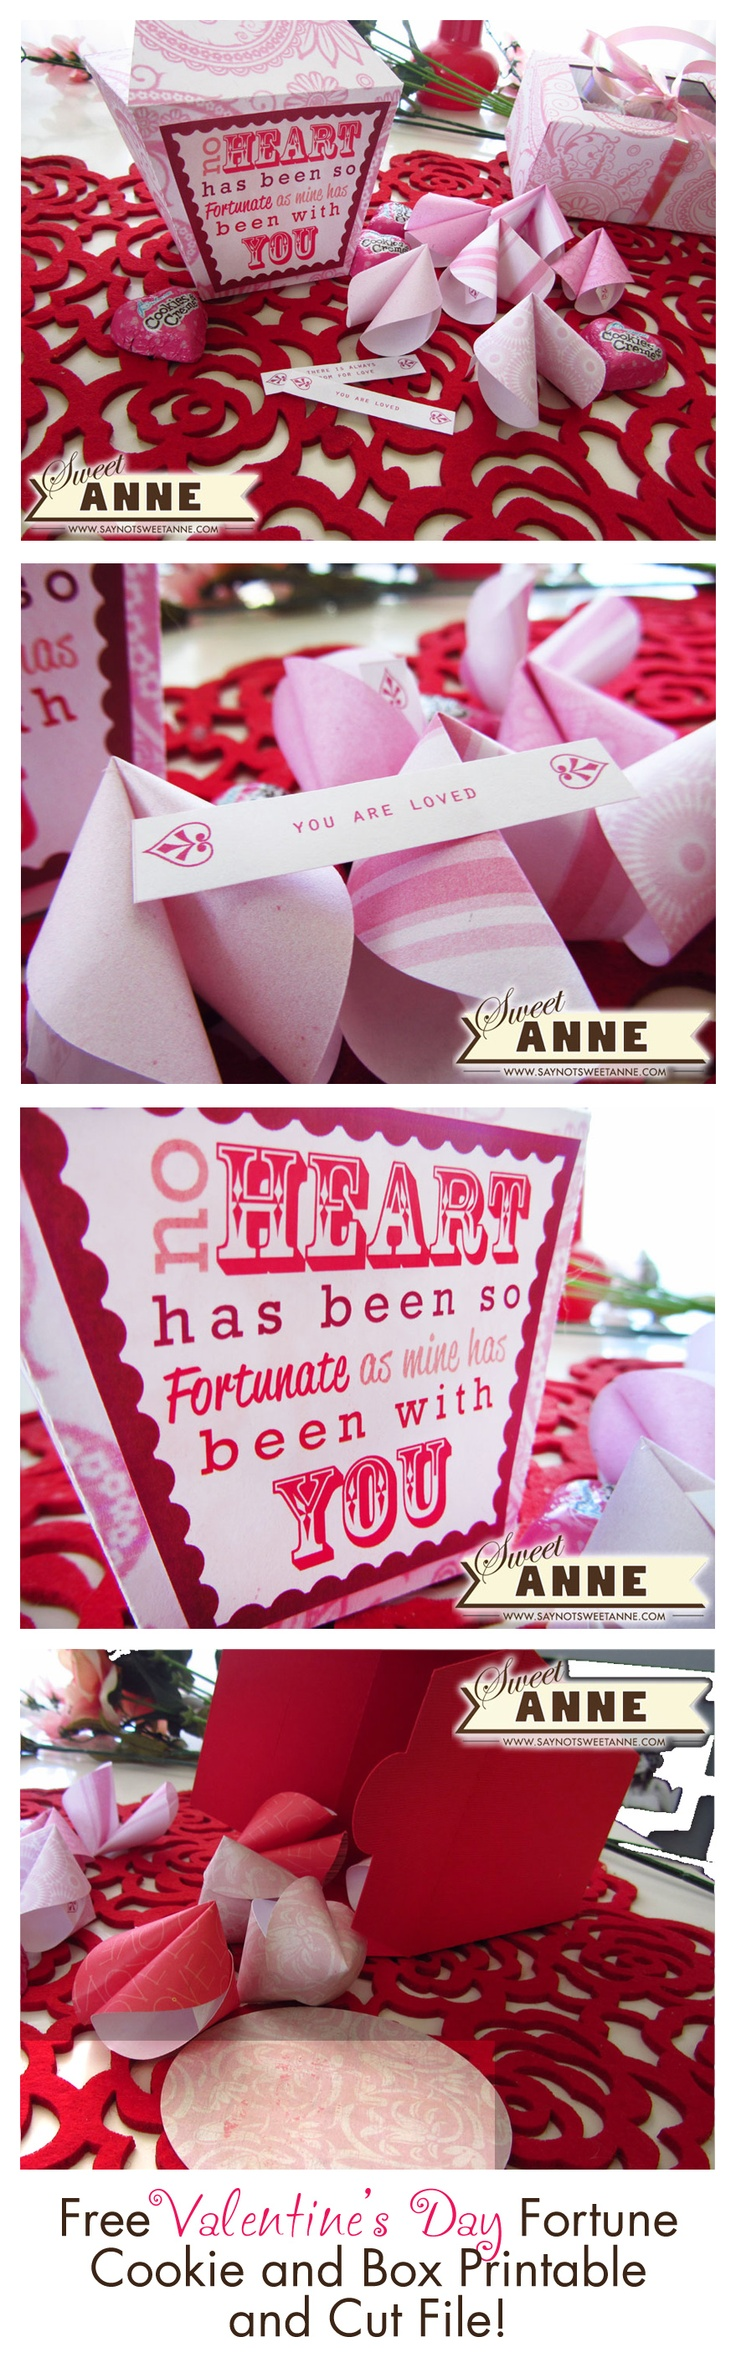 So sweet Valentine's Day Fortune, Fortune Cookie and Box! Free Printable and Cut File.: